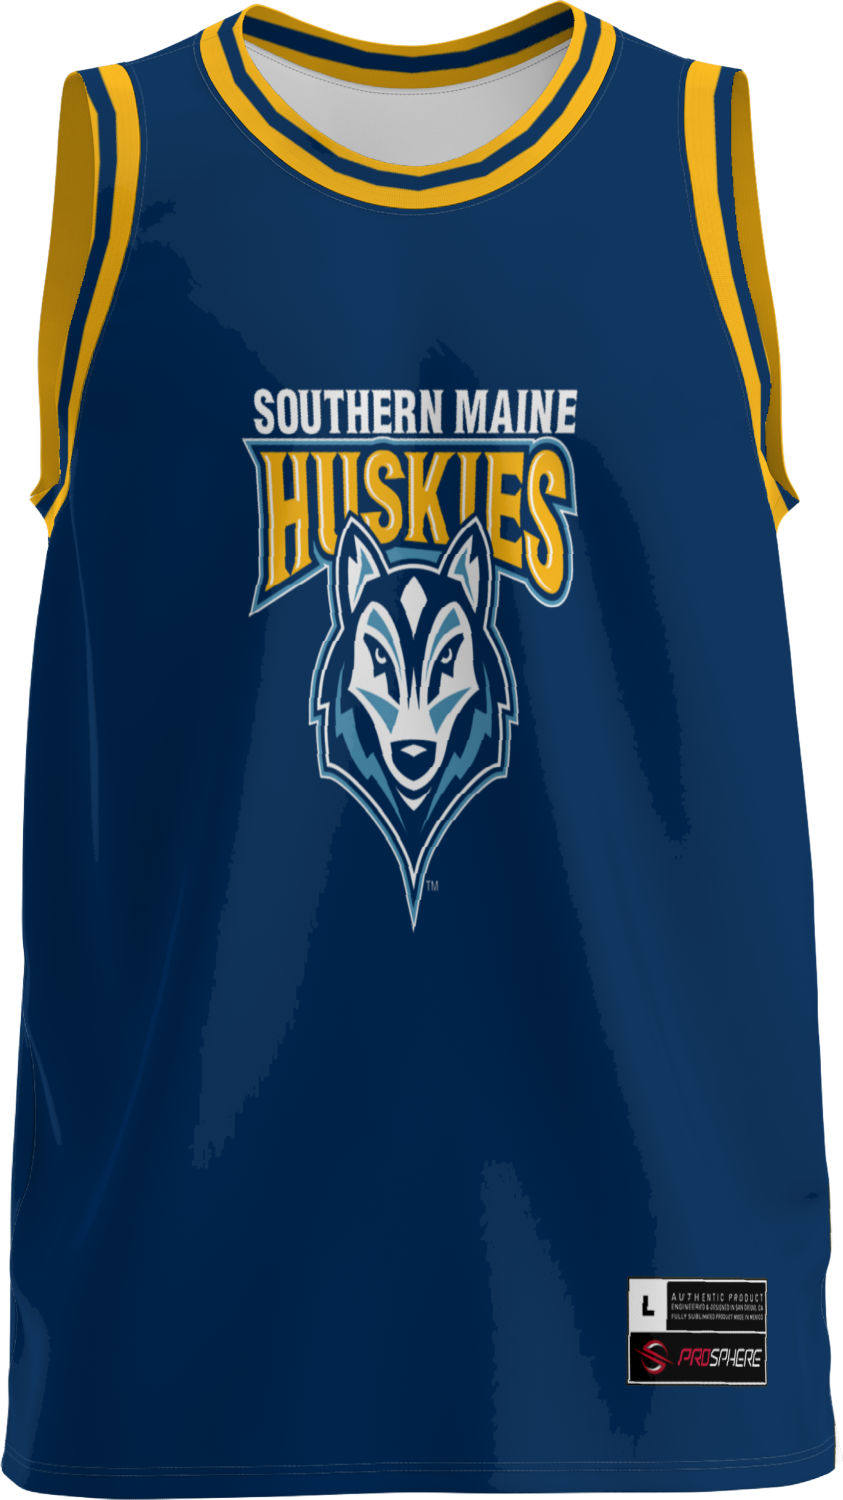 Men's University of Southern Maine Retro Replica Basketball Jersey (Apparel)